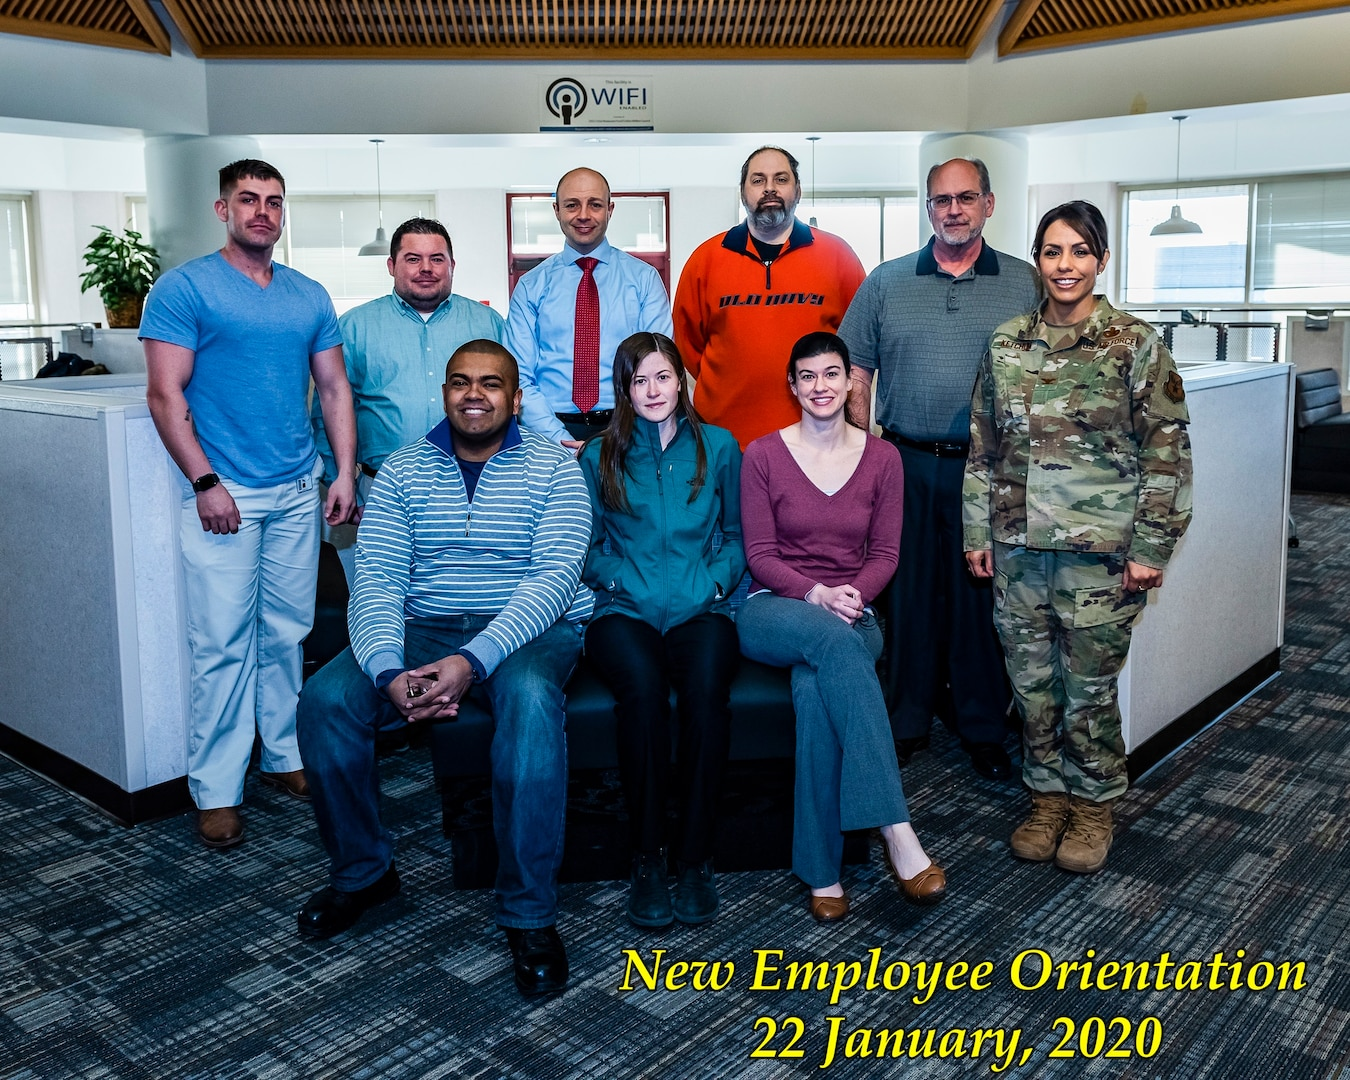 Group photo of 8 new employees who attended the new employee orientation on January 22 and 23, 2020.